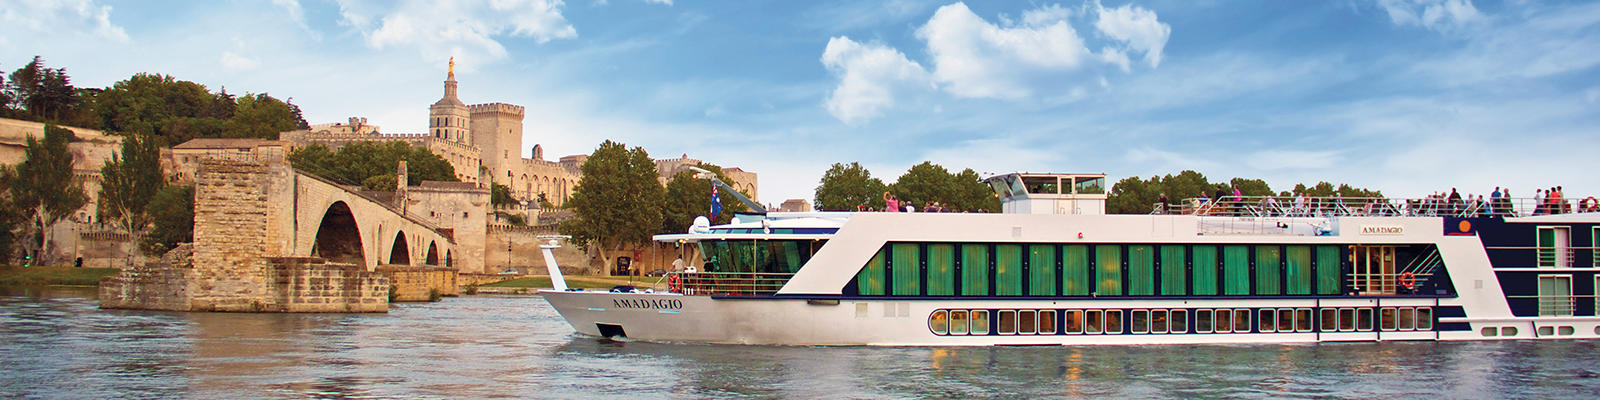 APT river cruise in Avignon France